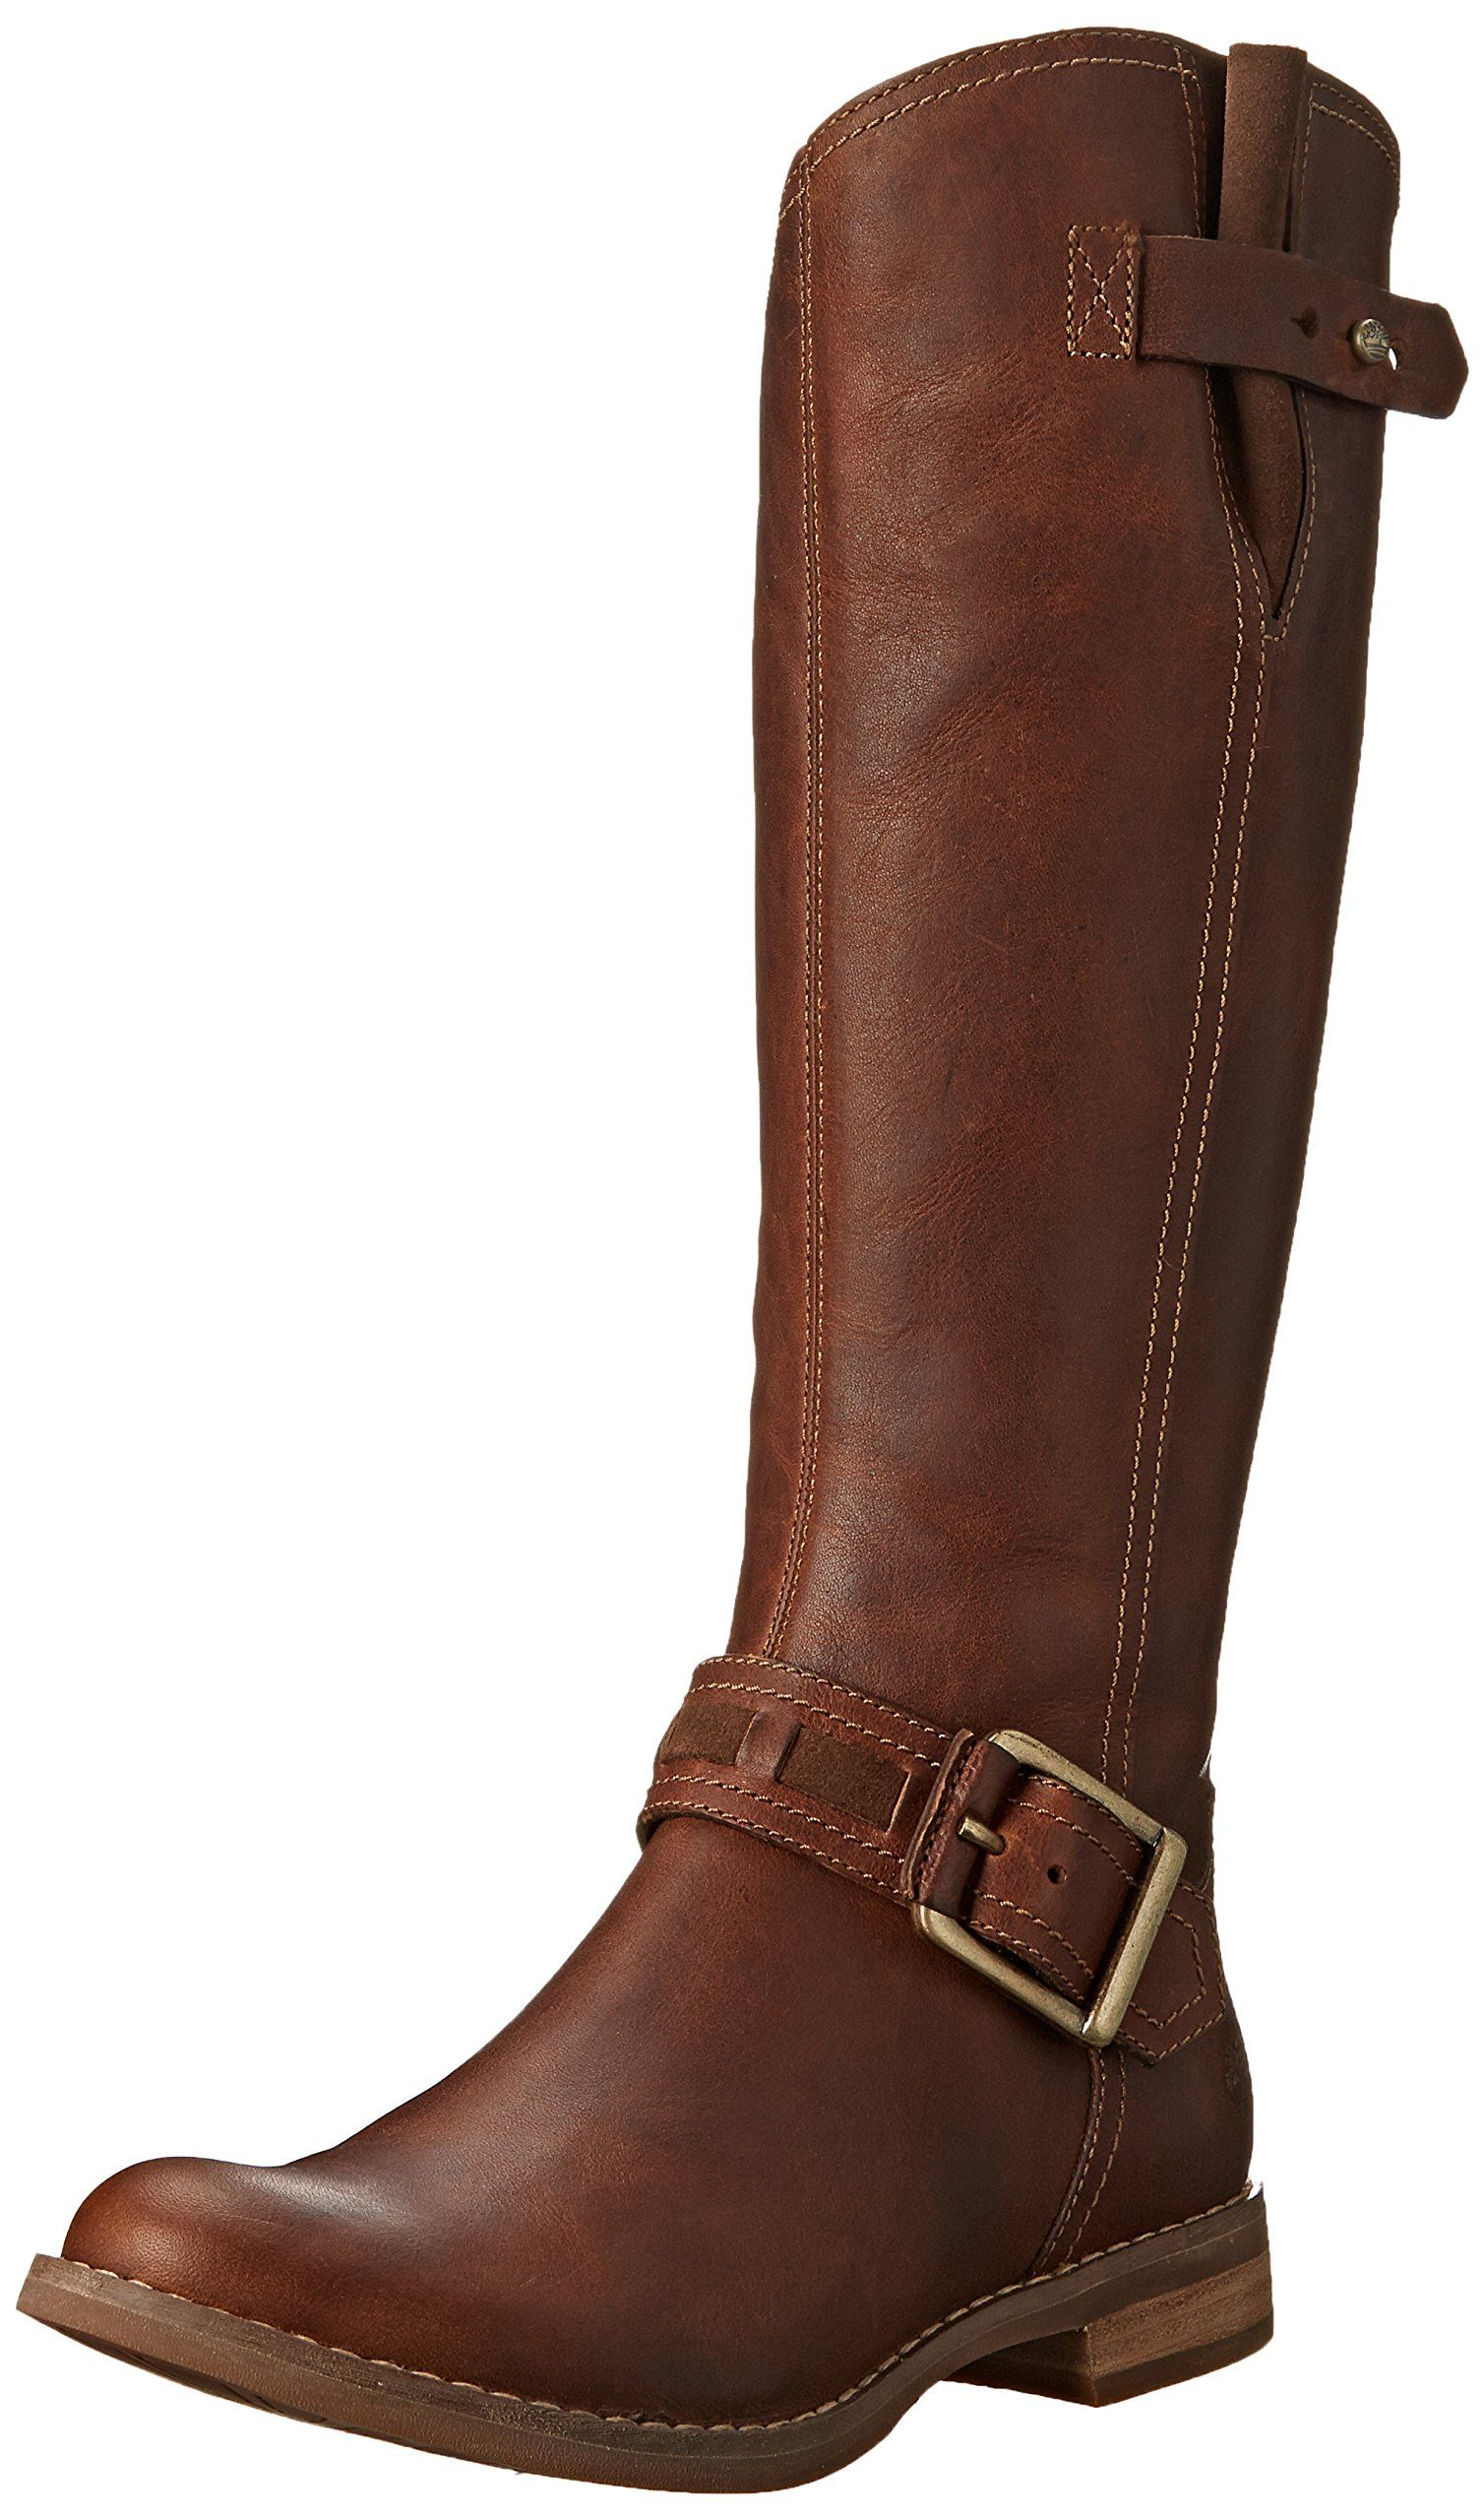 Timberland Women39s Savin Hill Tall Boottobacco Forty75